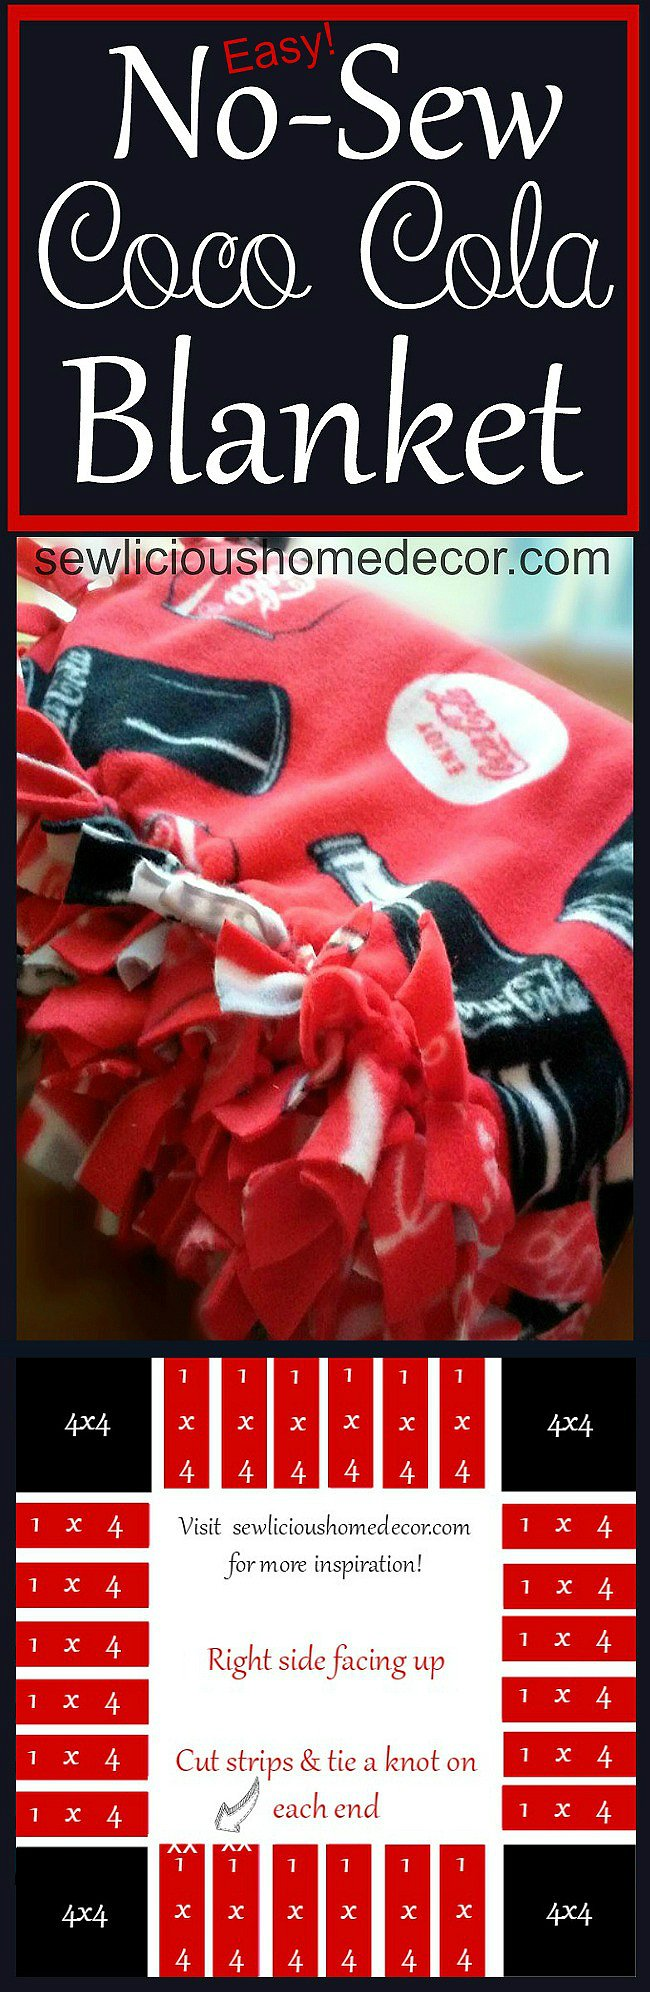 Easy No Sew Coca Cola Blanket Tutorial at sewlicioushomedecor.com